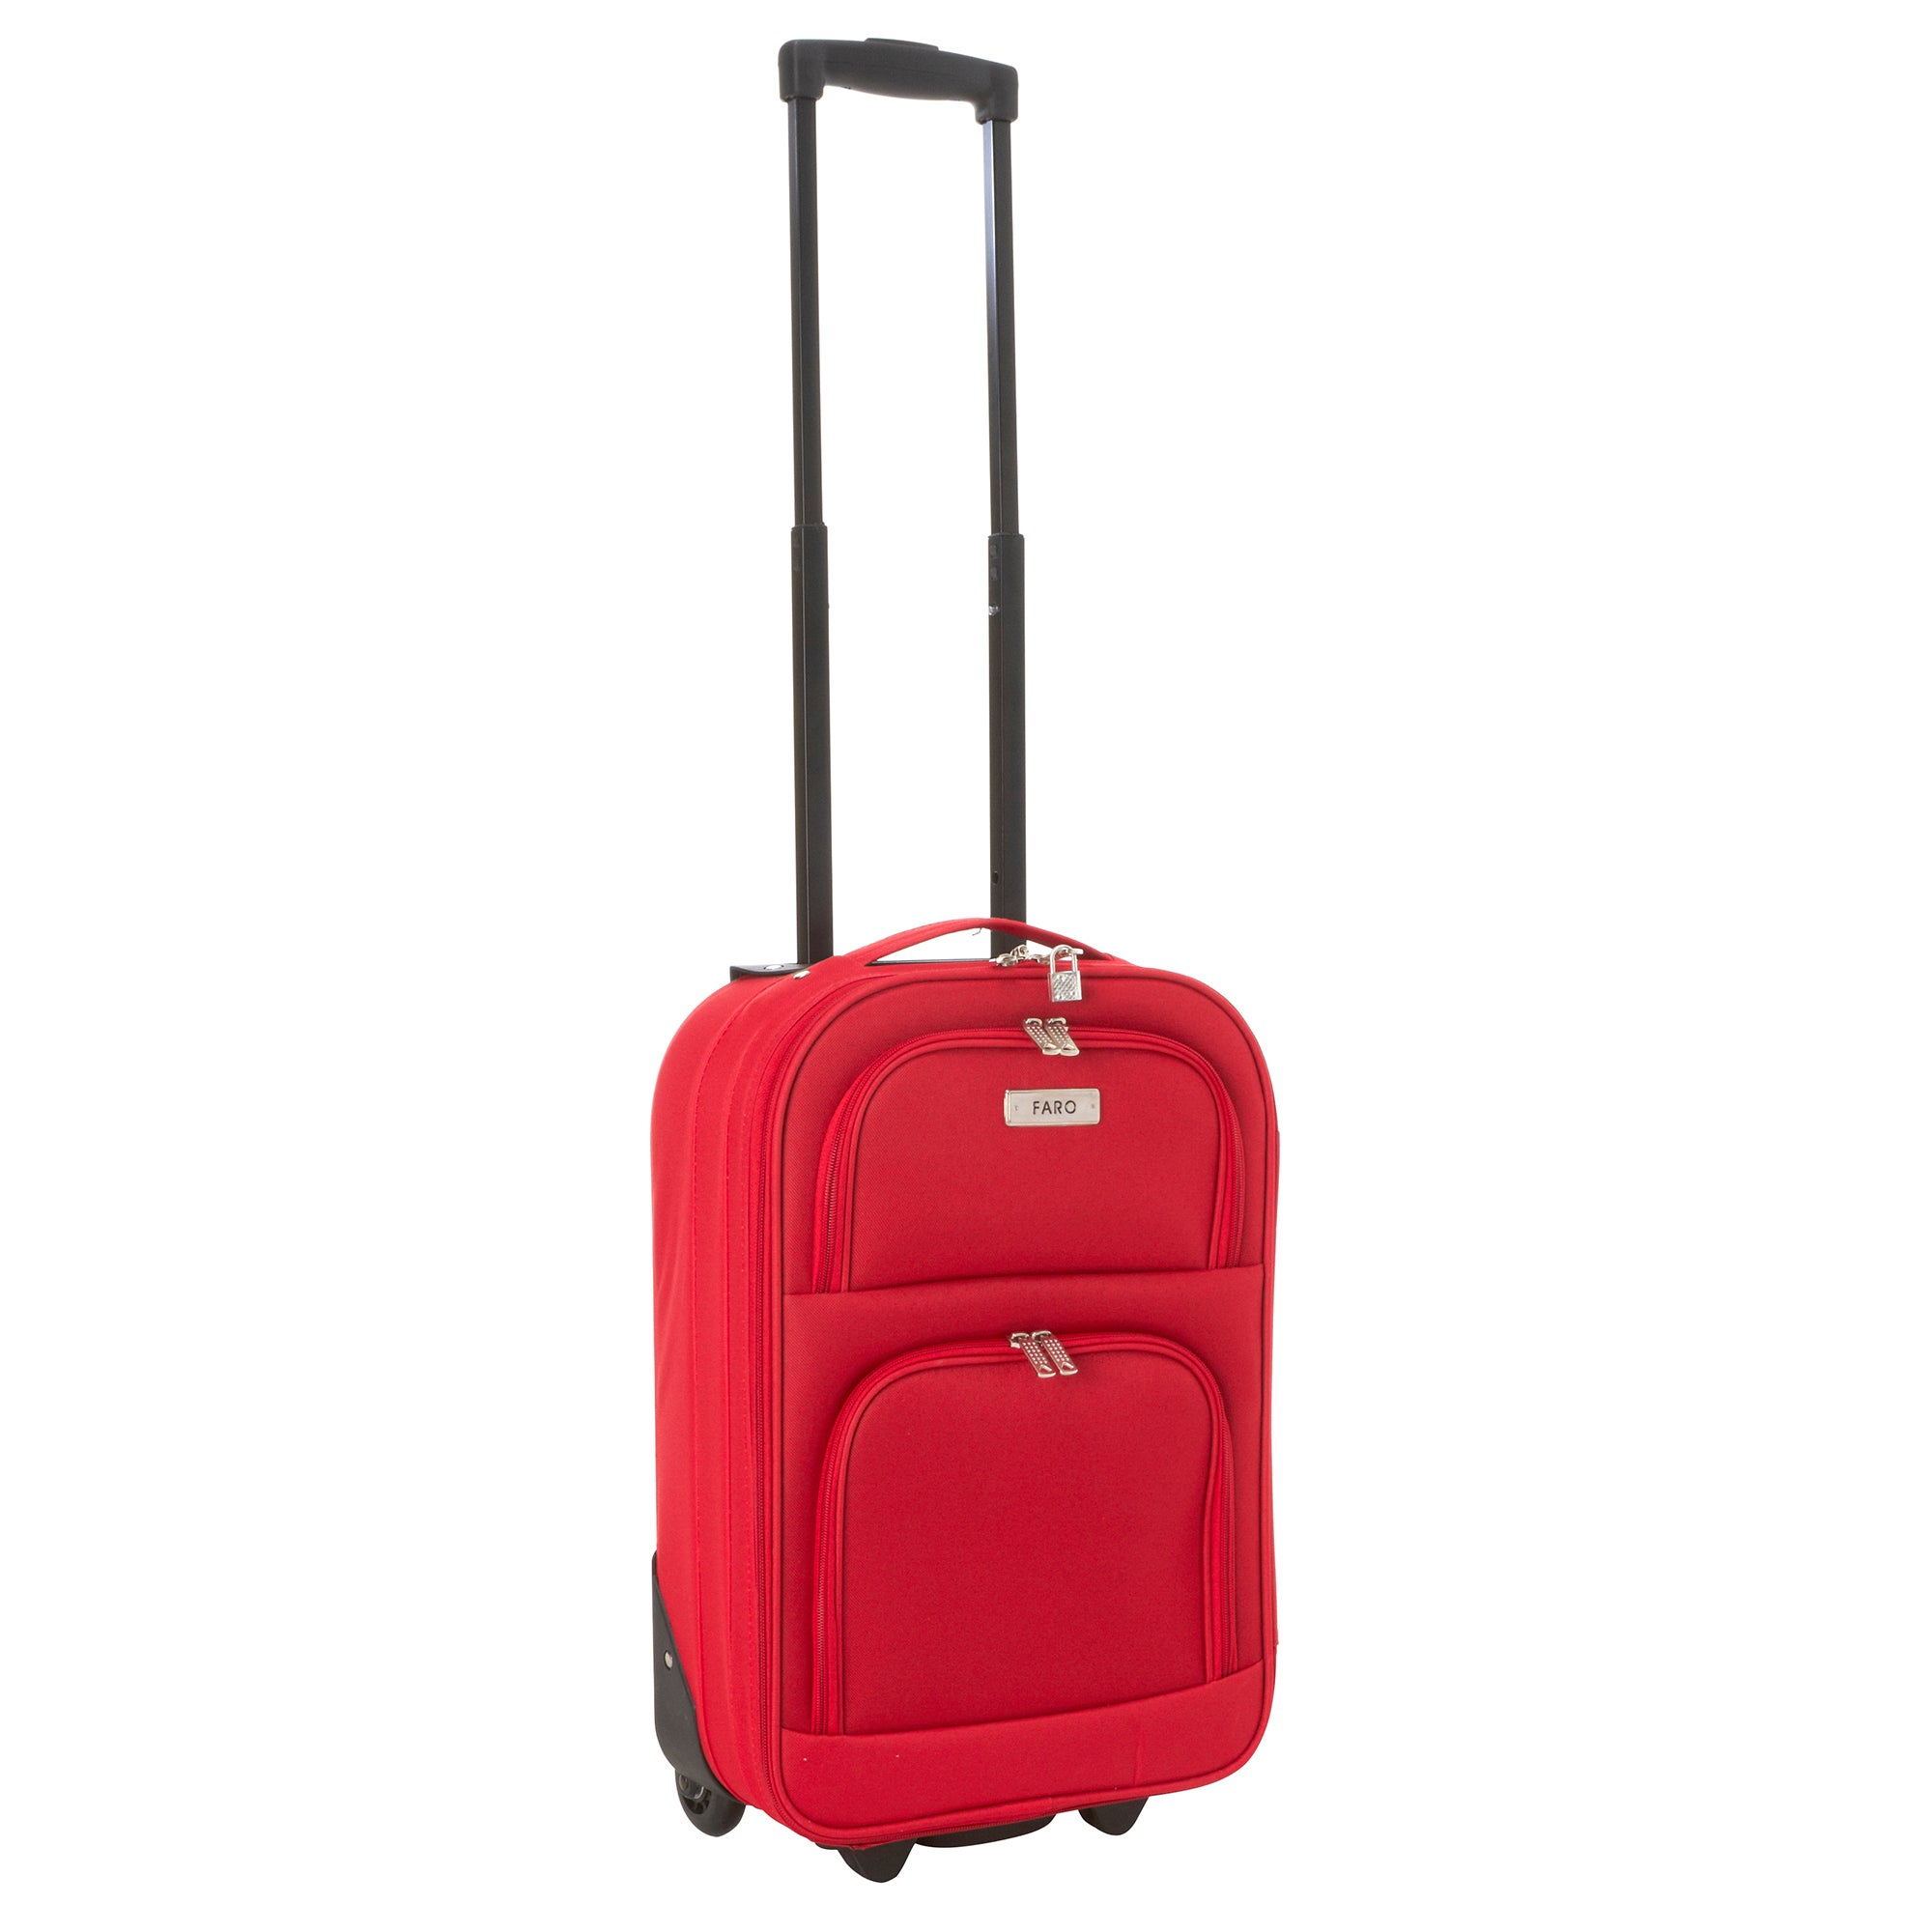 Faro Red 20 Inch Weekend Case